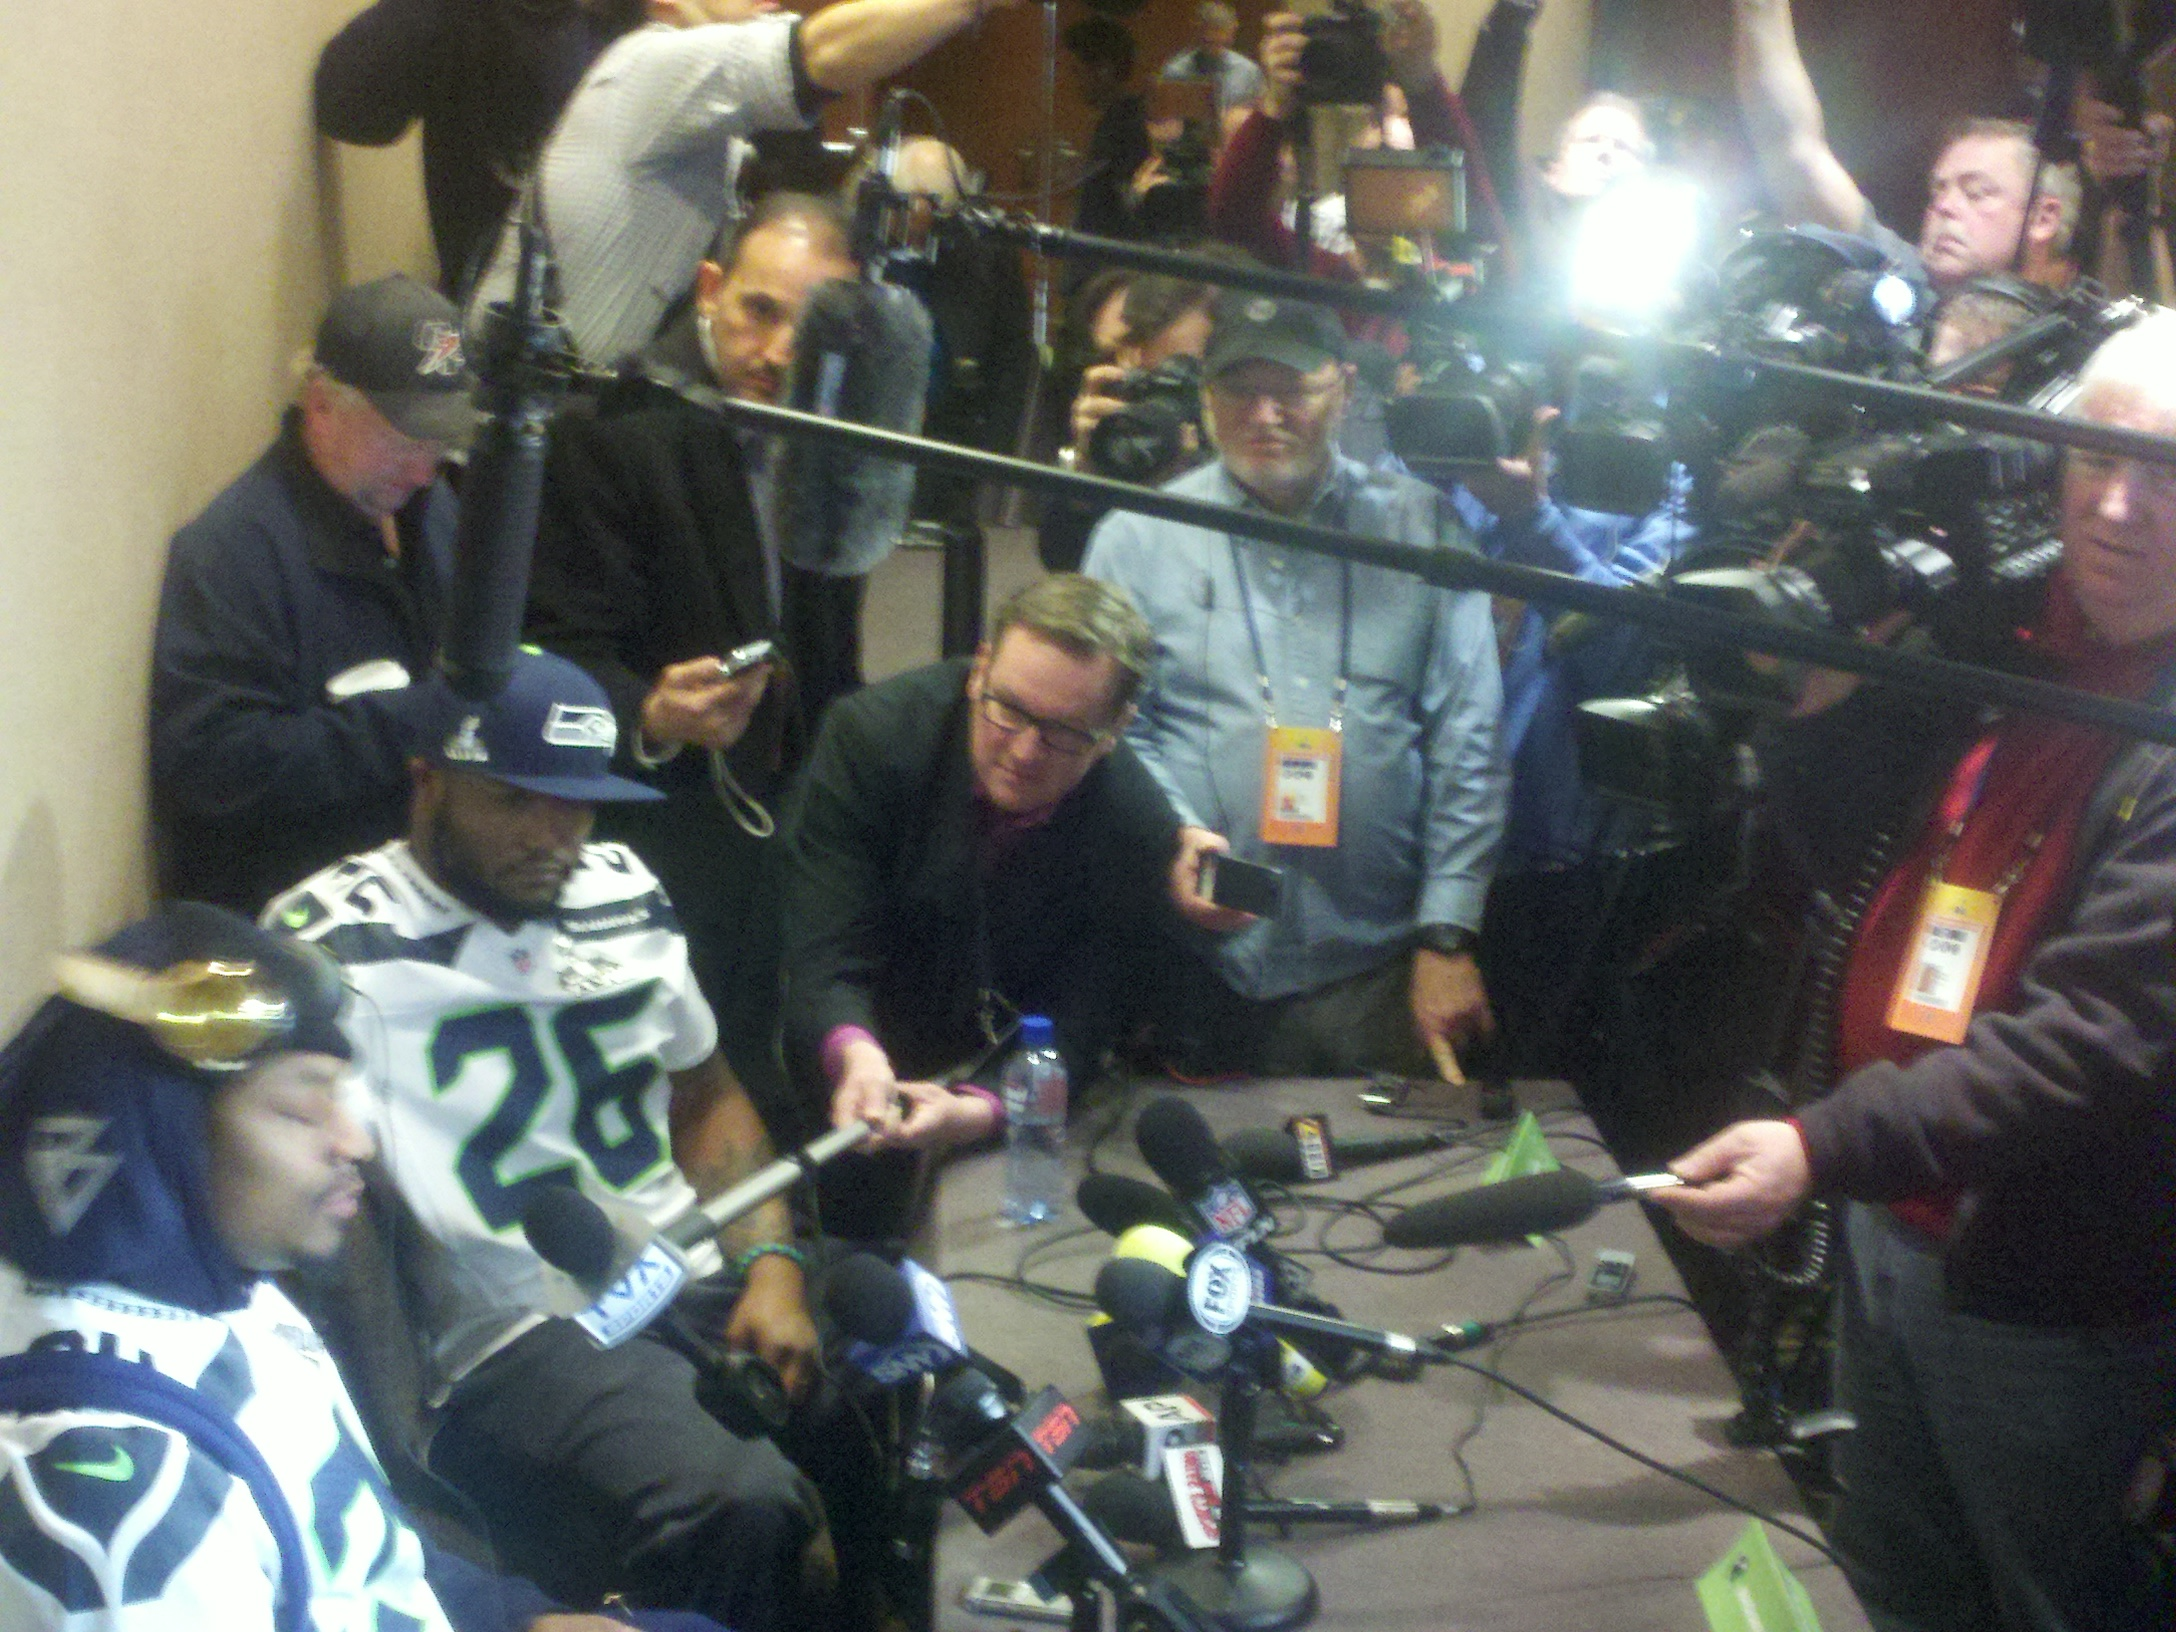 Marshawn Lynch, left, and teammate Michael Robinson face the media horde Wednesday at the team's hotel in Jersey City, N.J. / Art Thiel, Sportspress Northwest